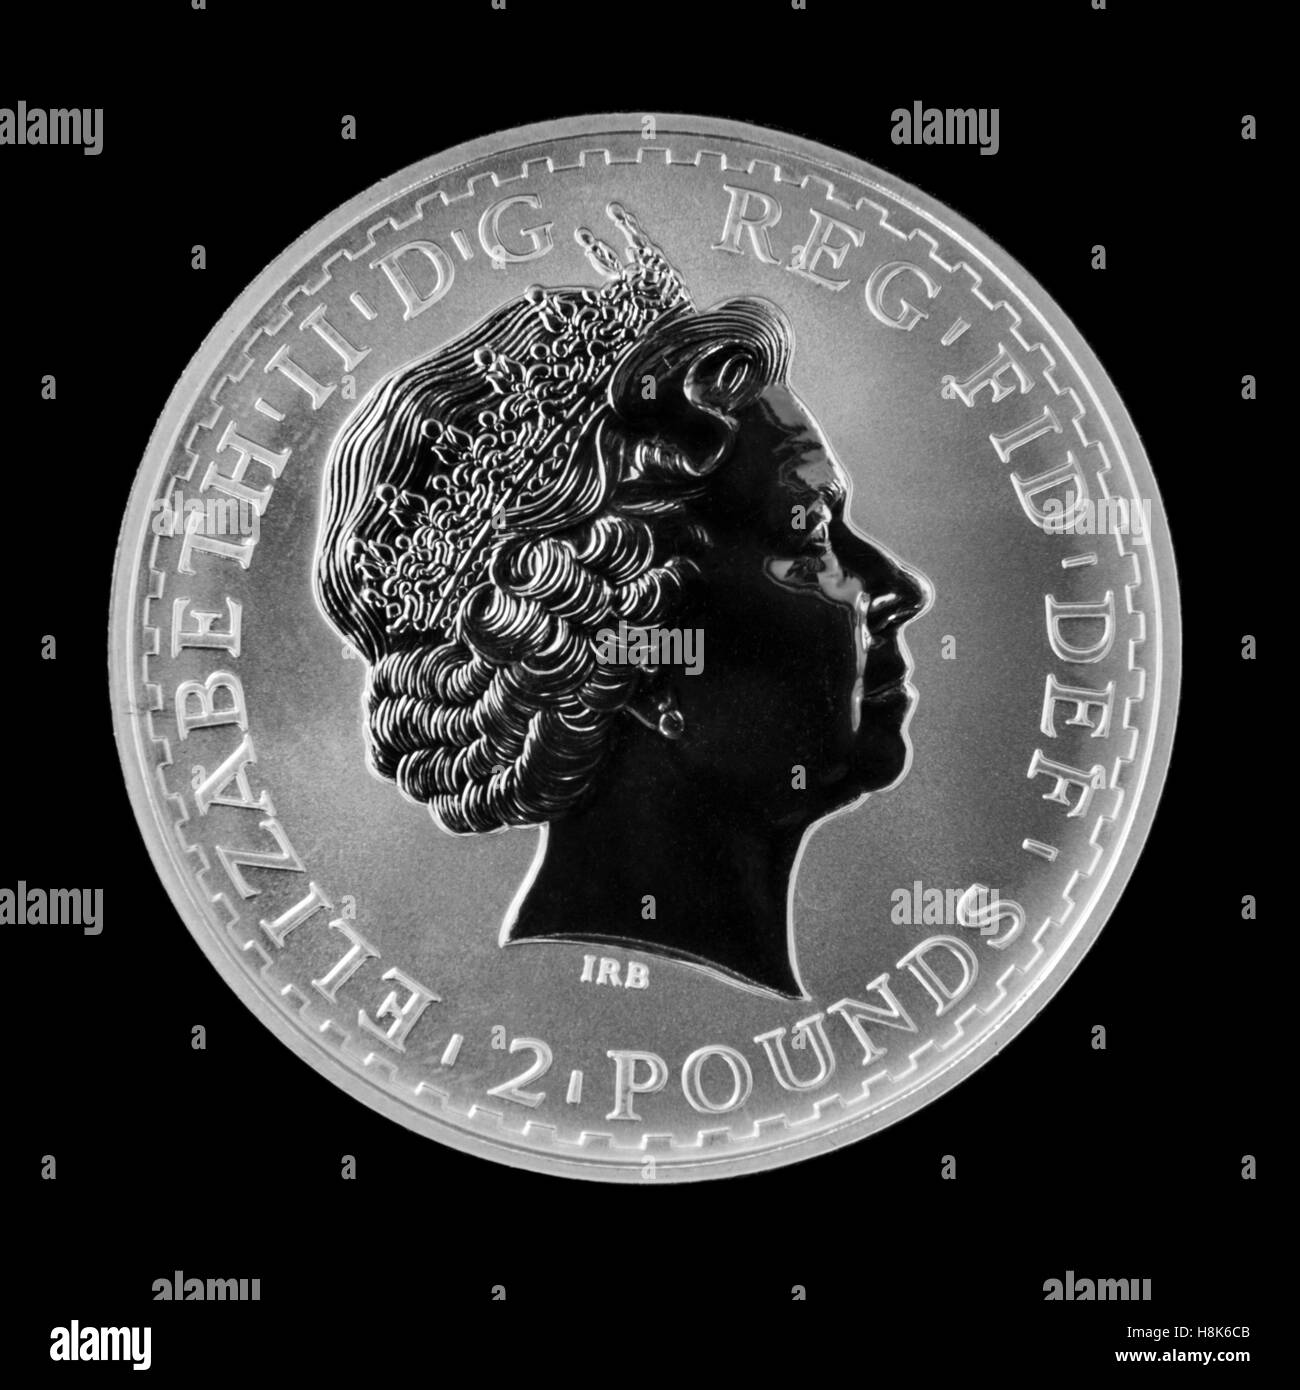 Royal Mint 1999 Brittania Silver Bullion £2 Coin, issued in a Limited Edition of 100,000 - Stock Image